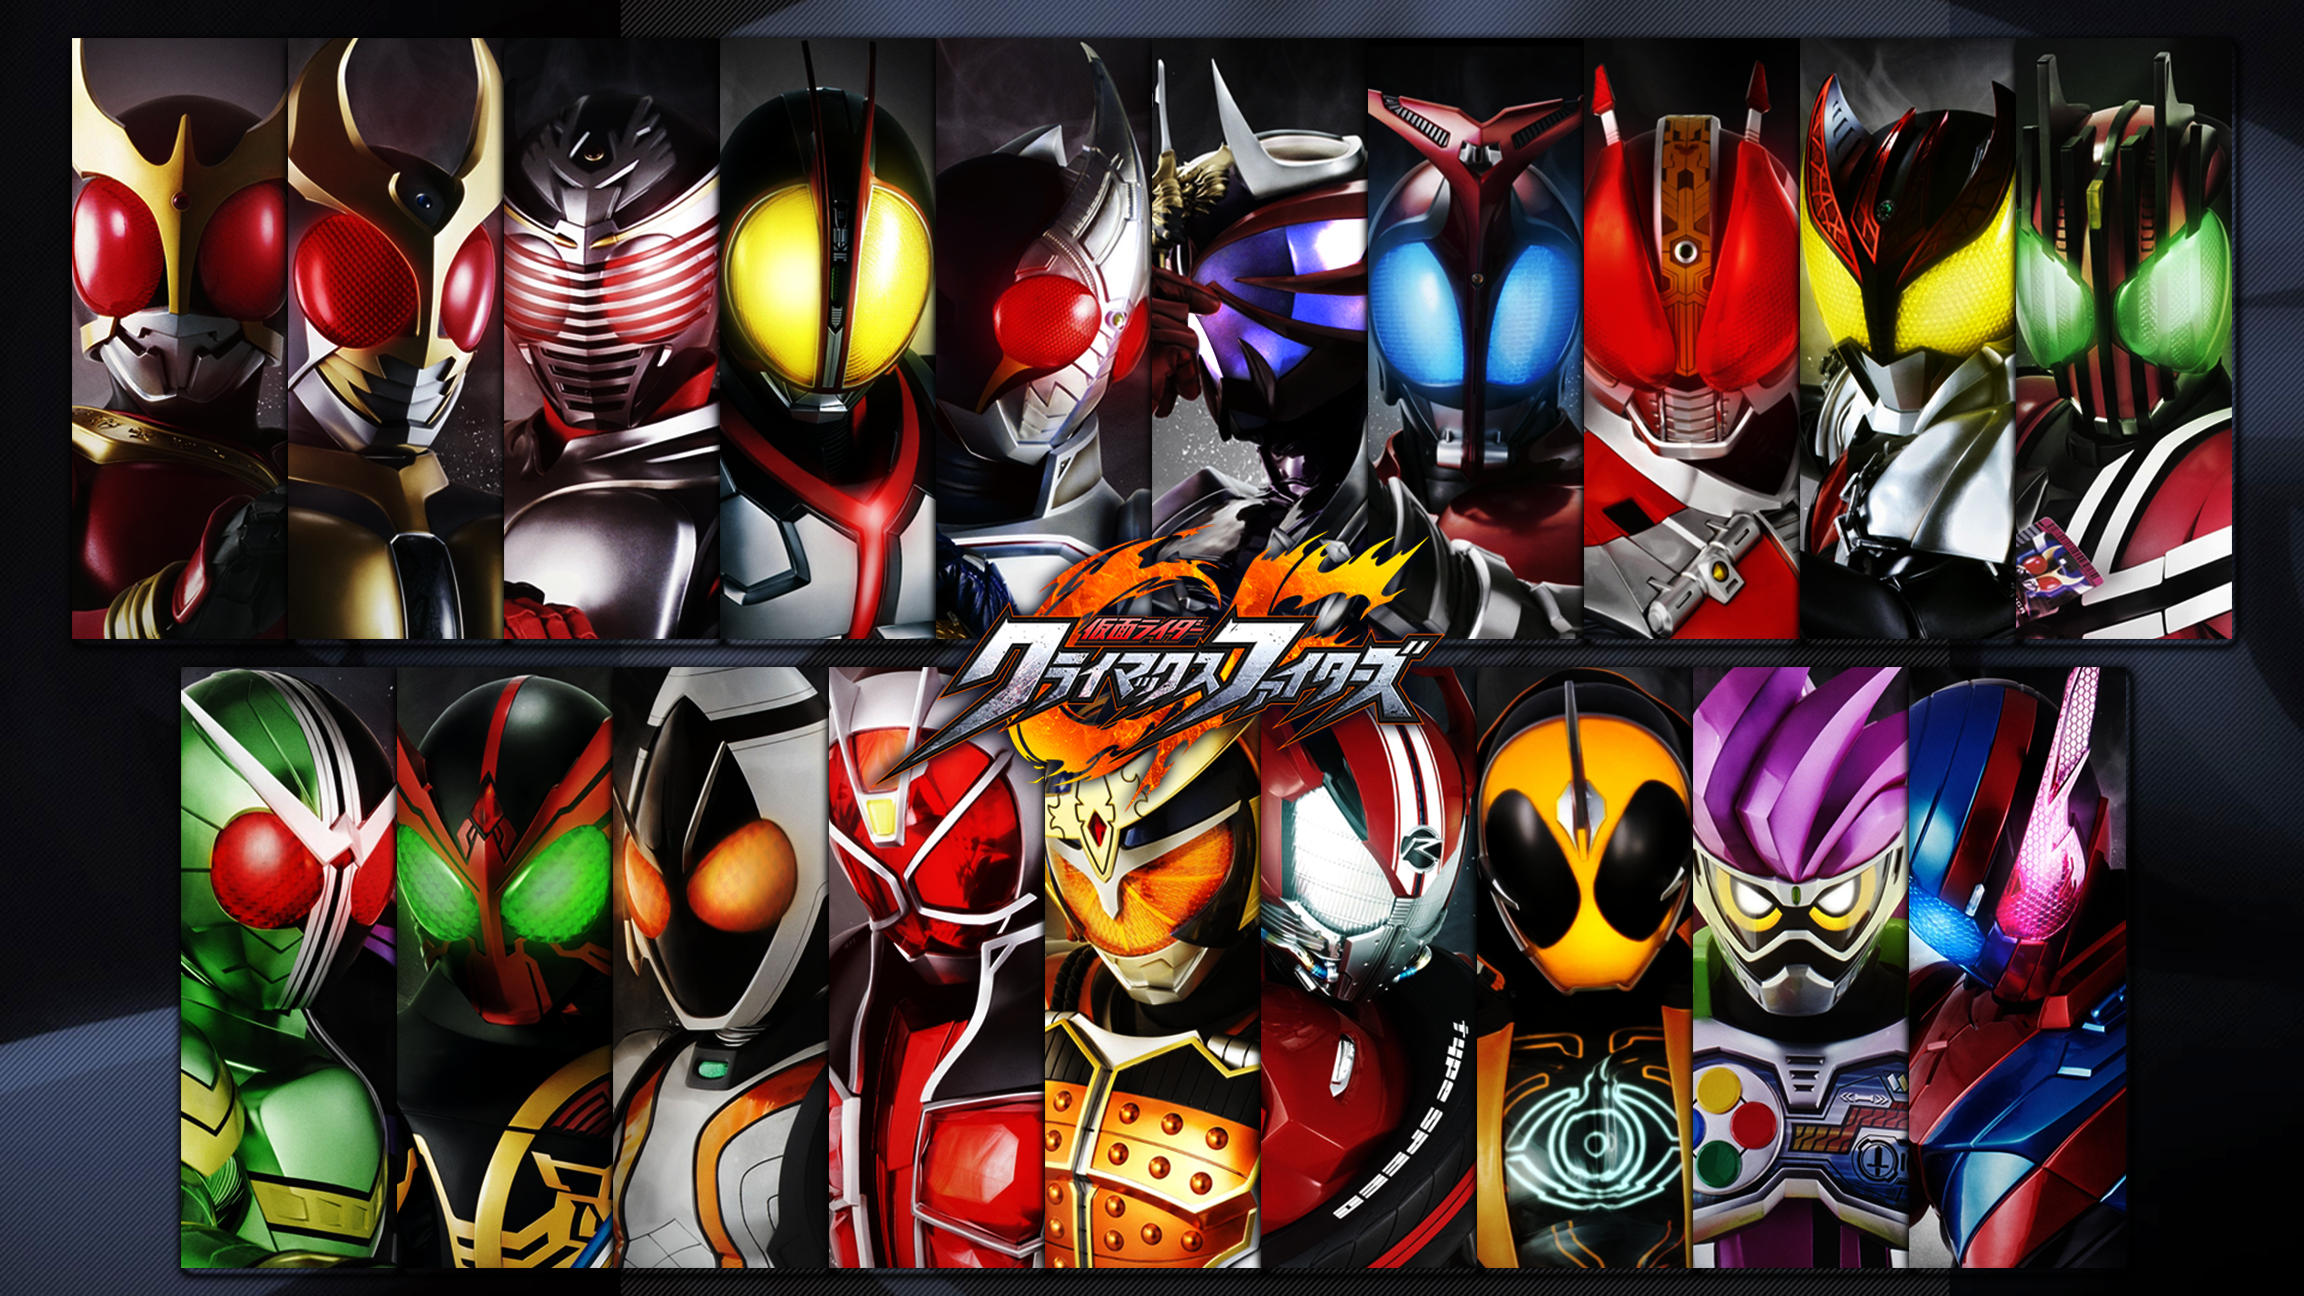 kamen rider climax fighter wallpaper by phonenumber123 on